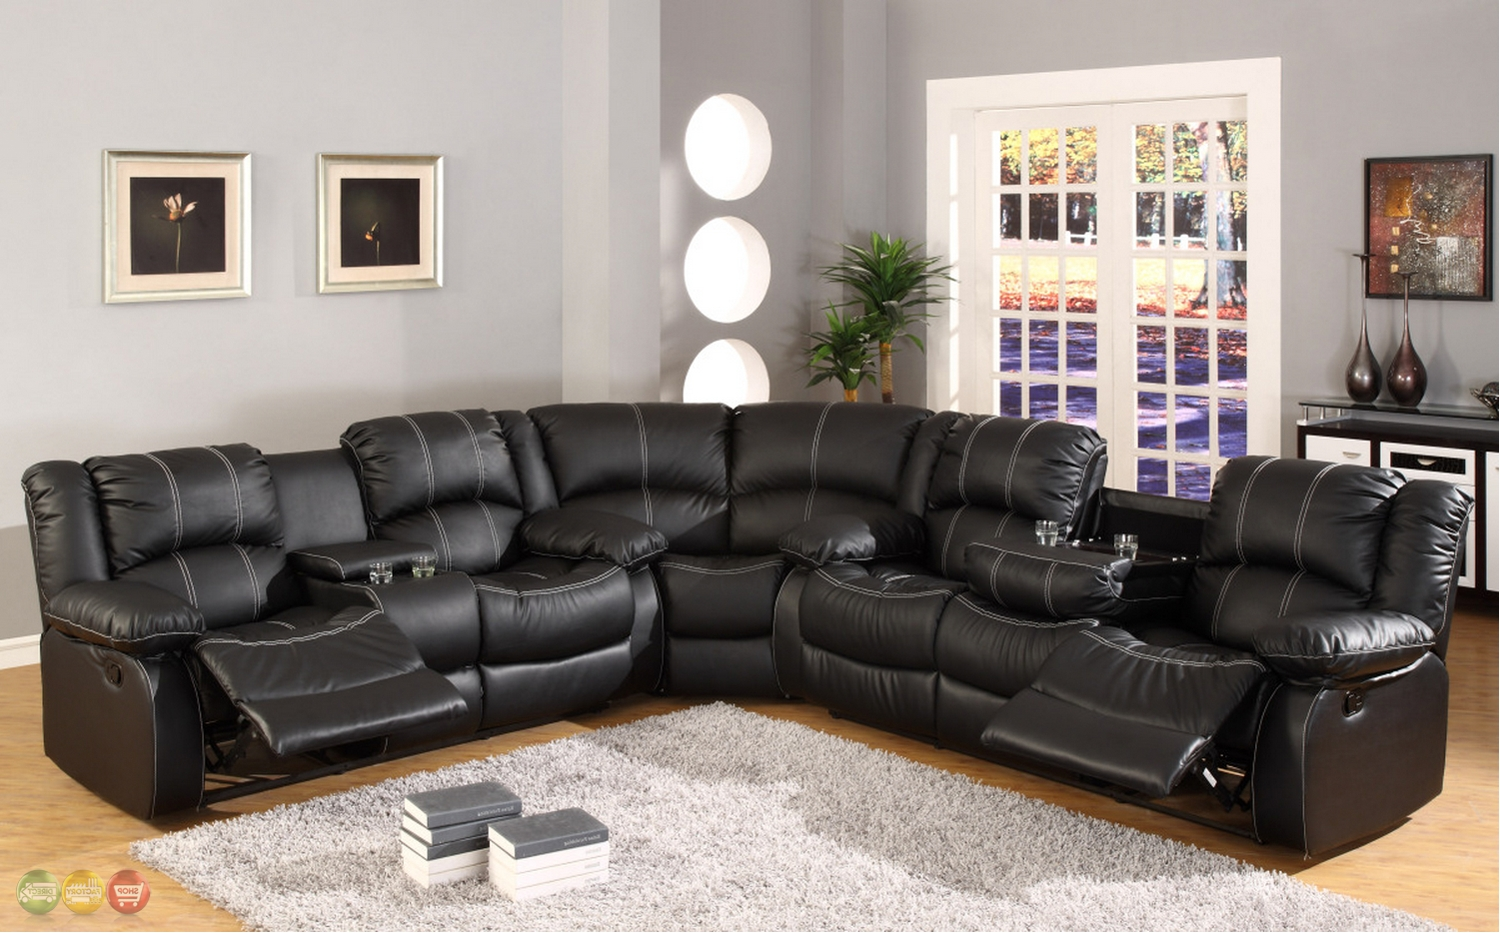 Black Faux Leather Reclining Motion Sectional Sofa W/ Storage Regarding Most Popular Leather Motion Sectional Sofas (View 3 of 15)